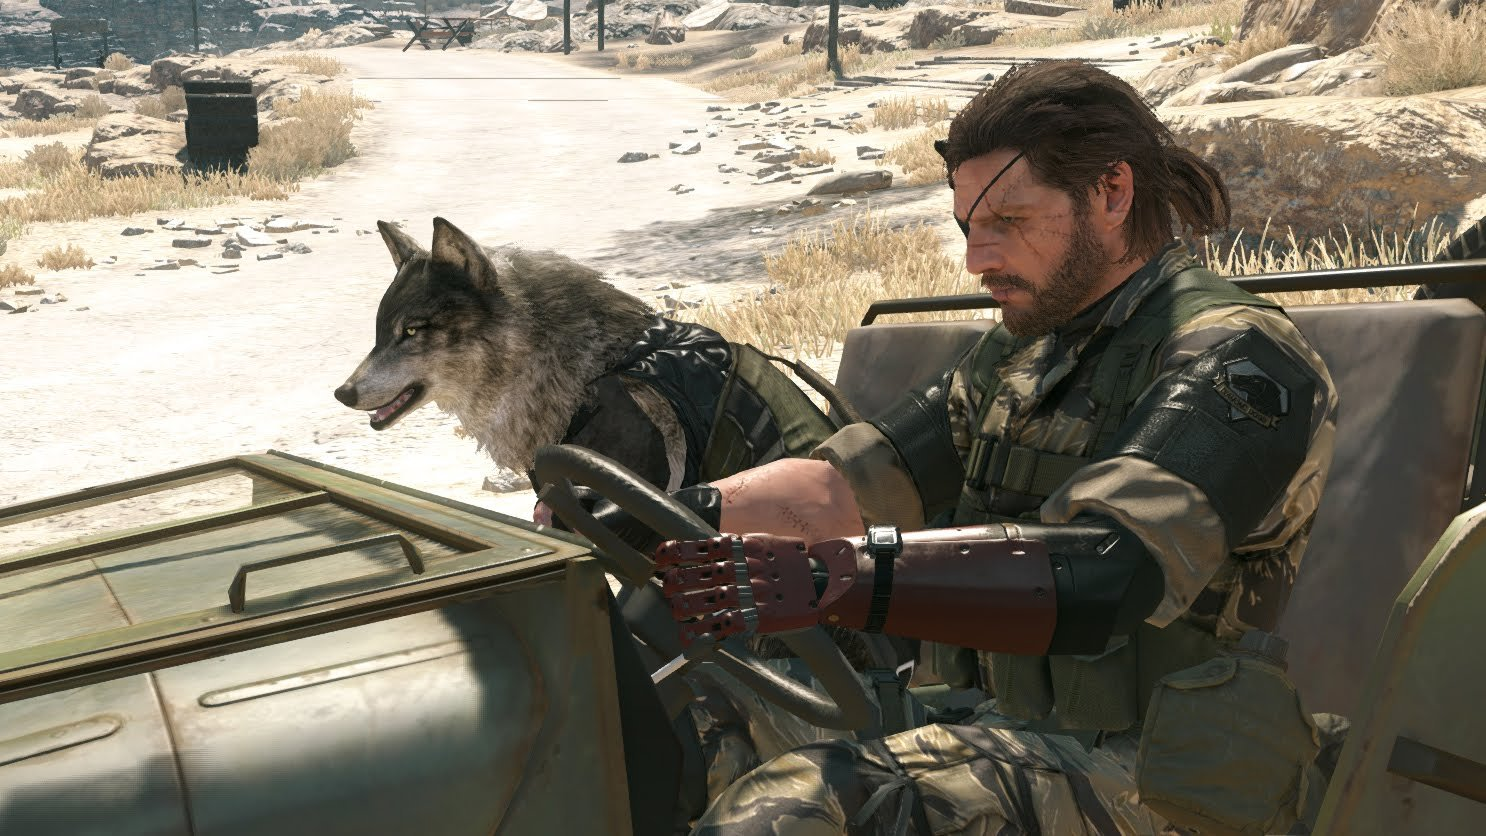 METAL GEAR SOLID V: THE PHANTOM PAIN PREMIUM PACKAGE(PS4)1/1Bionic Arm